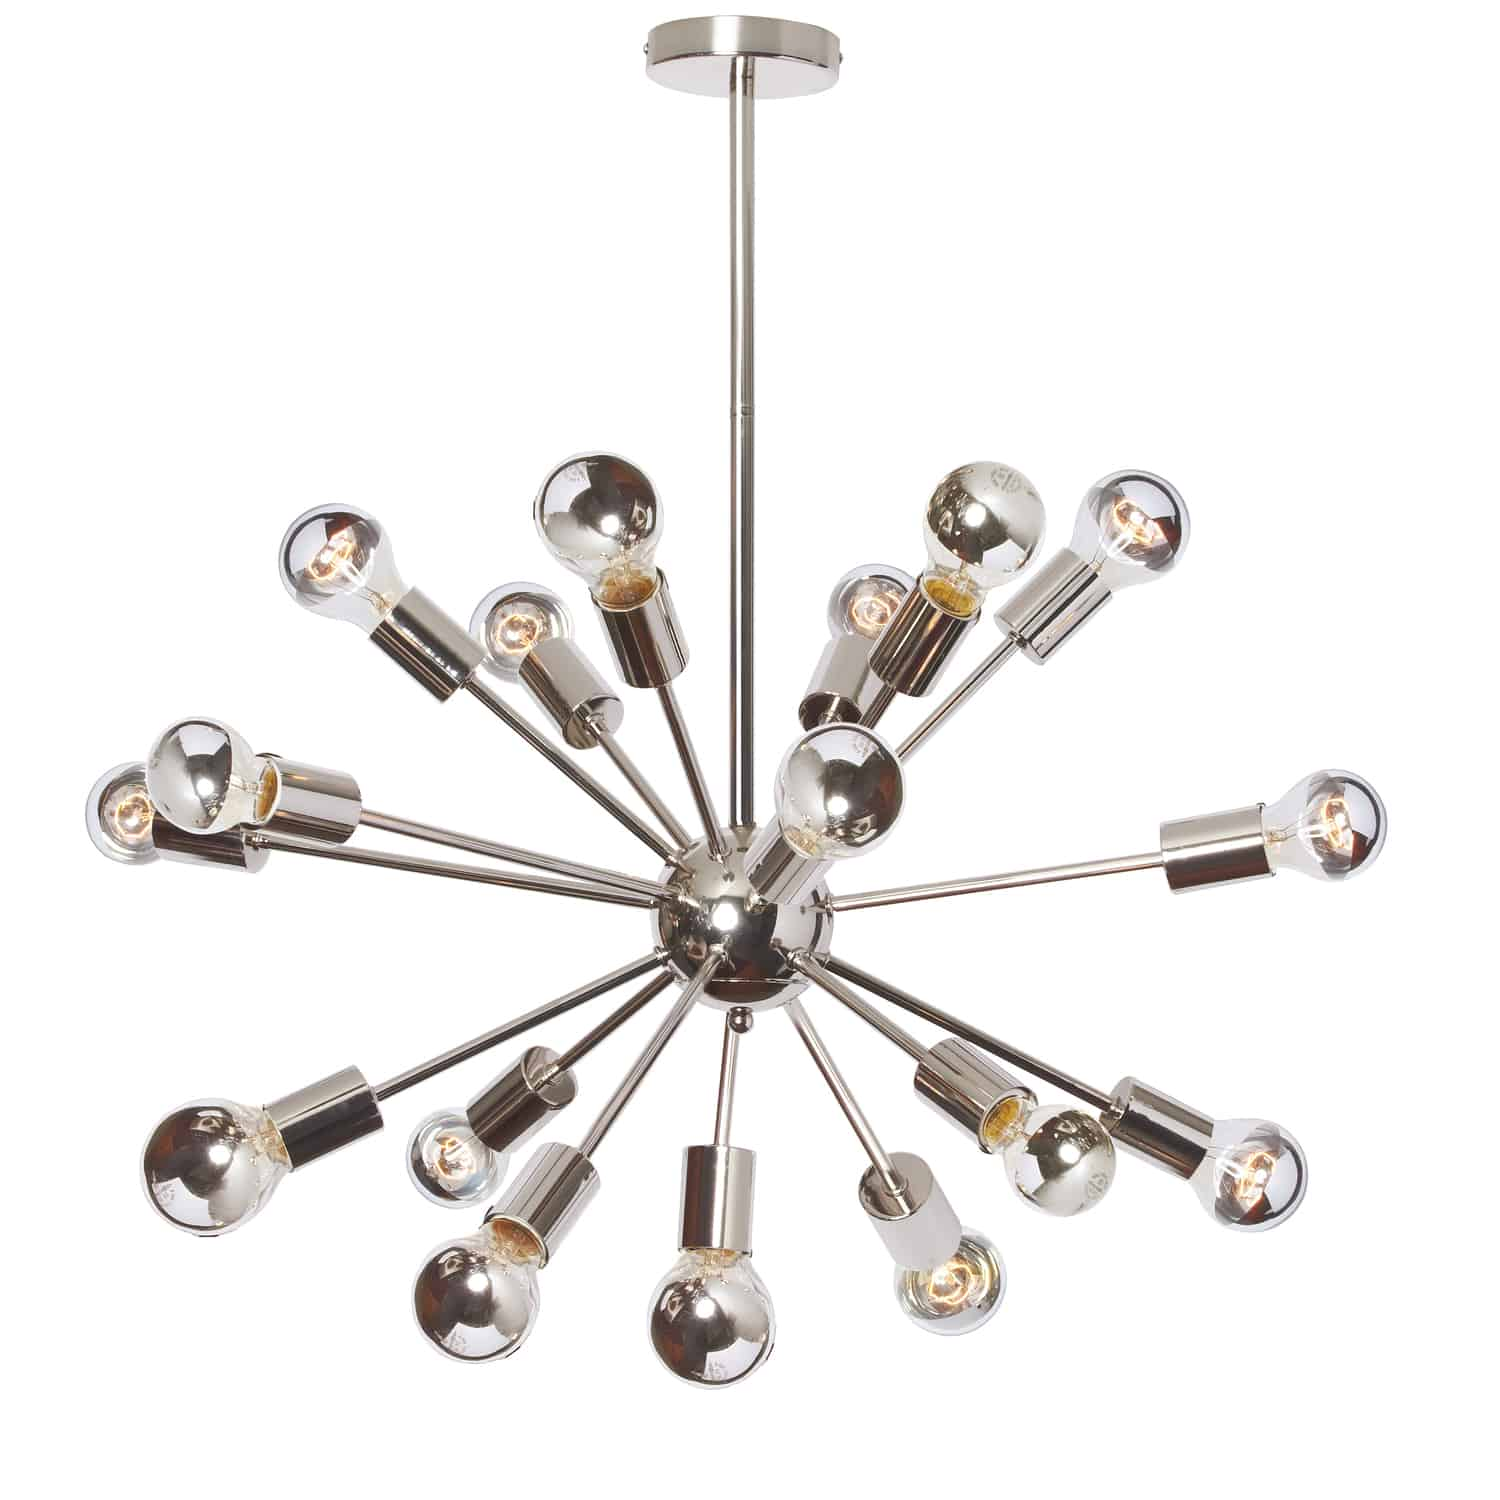 18LT Satellite Horiz Pendant w A19 Chrome Bulbs — Dainolite